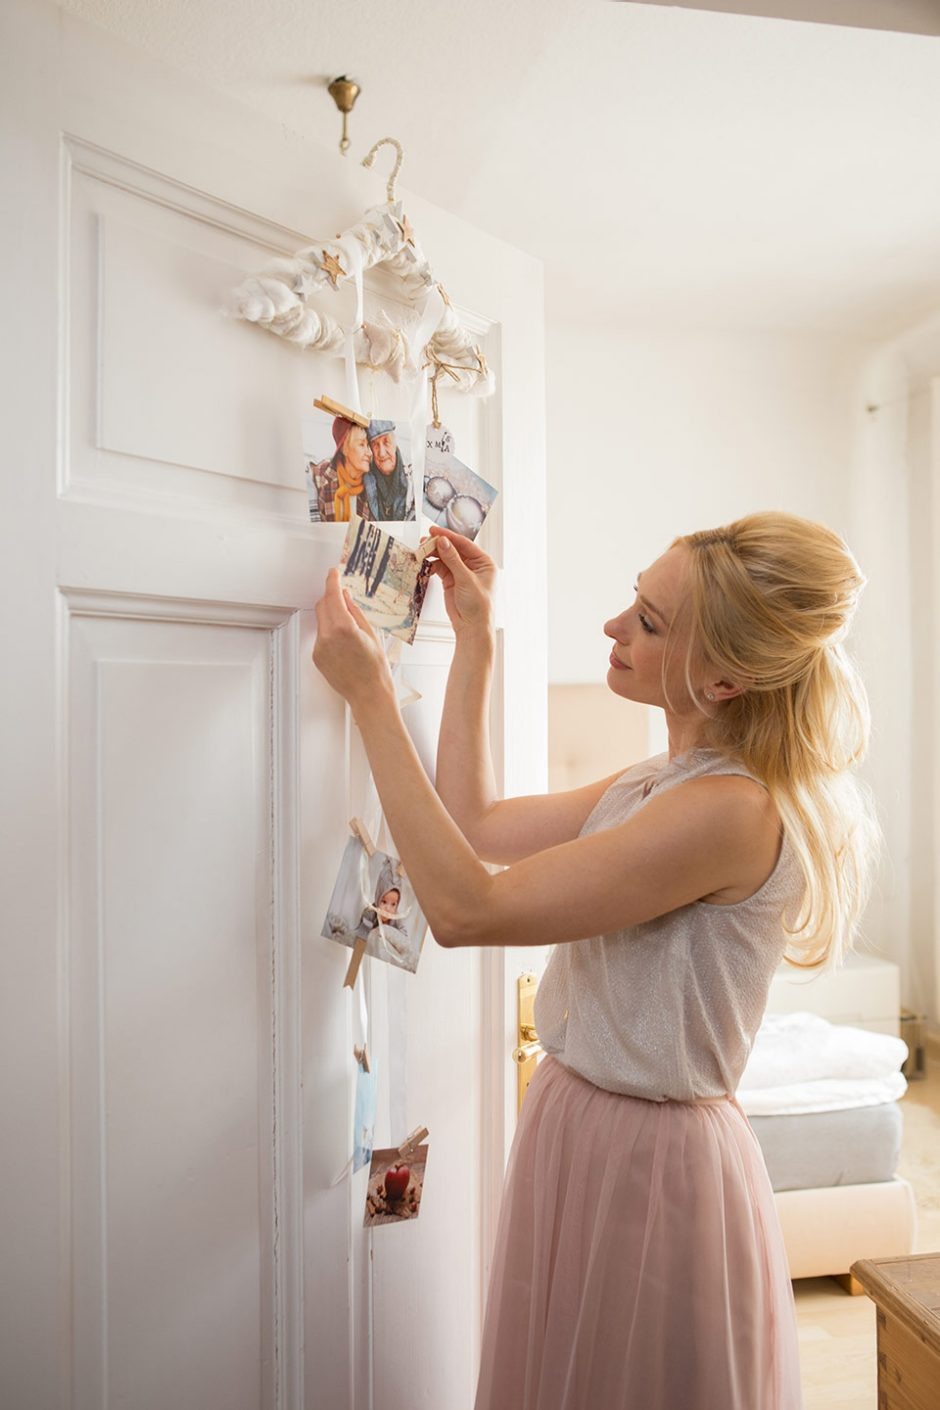 A woman standing in front of a door adorning her garland with photos